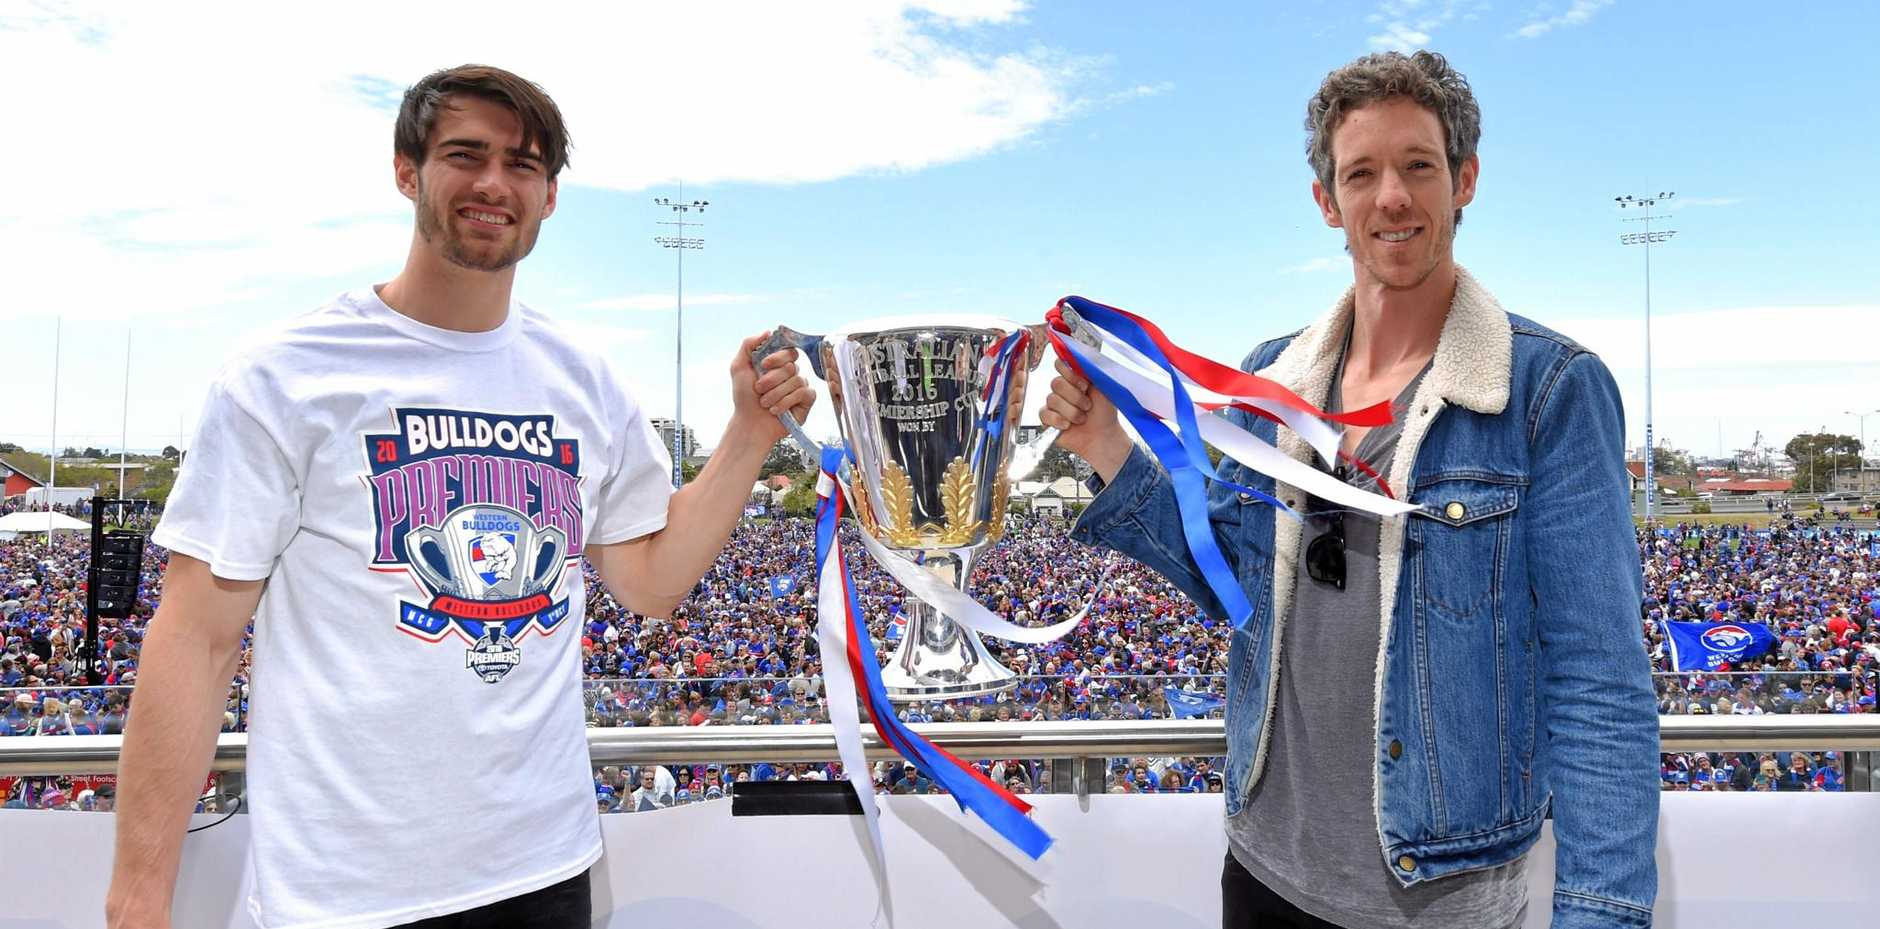 Western Bulldogs captains Robert Murphy (right) with stand-in skipper Easton Wood and the 2016 premiership trophy at Whitten Oval.